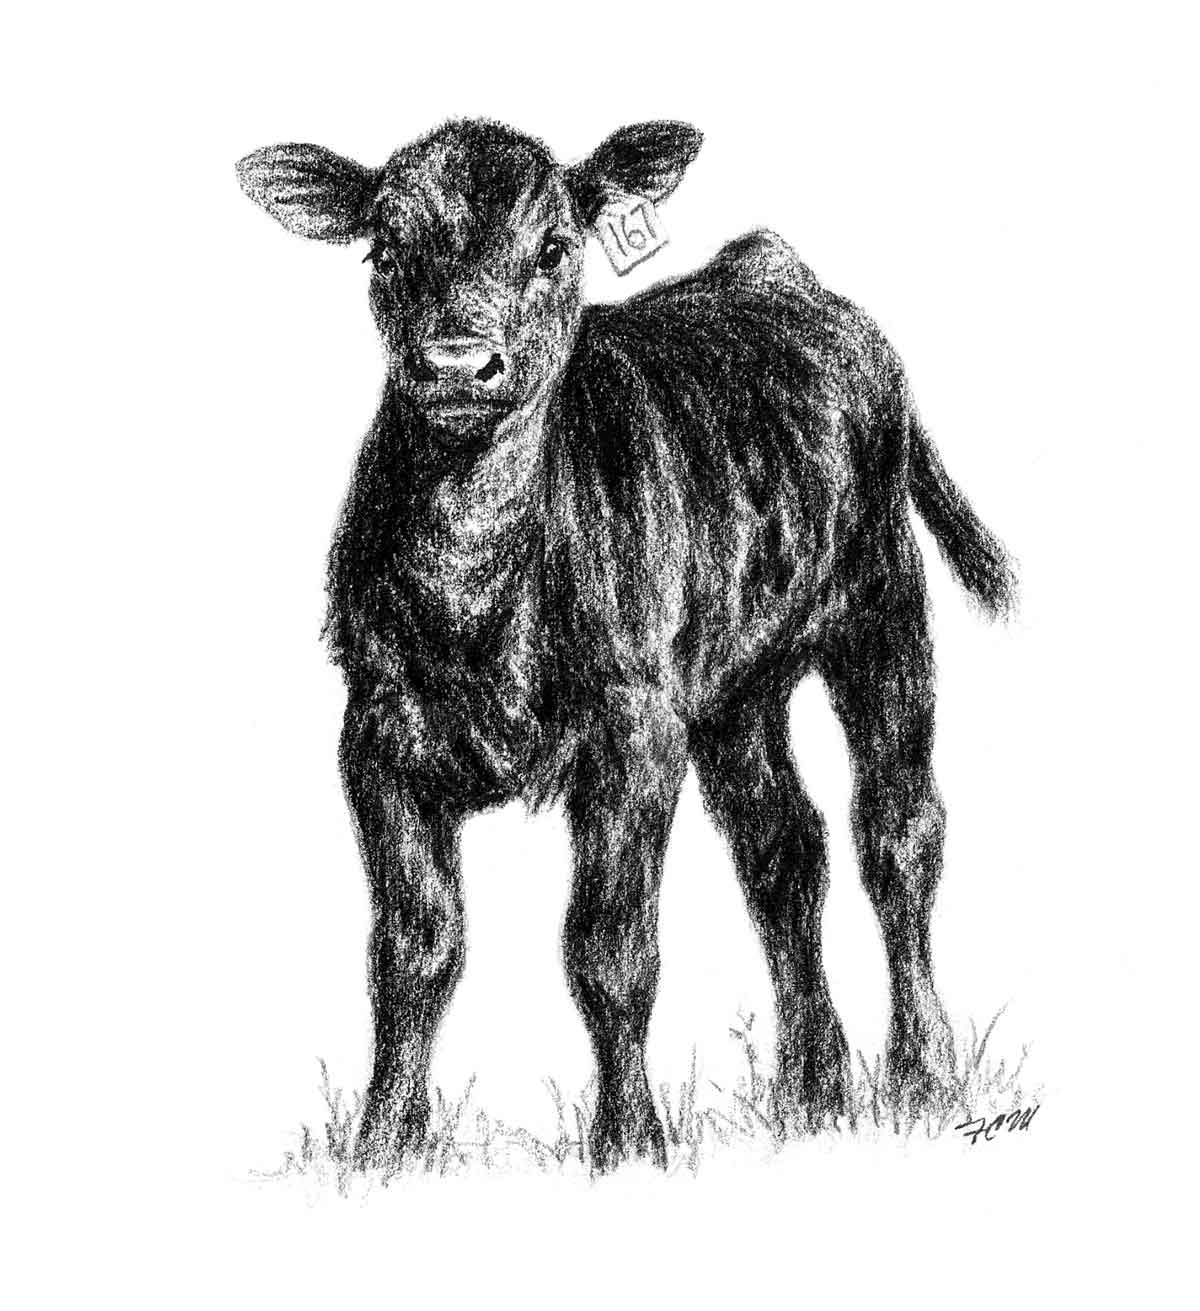 Drawn cattle baby calf #9